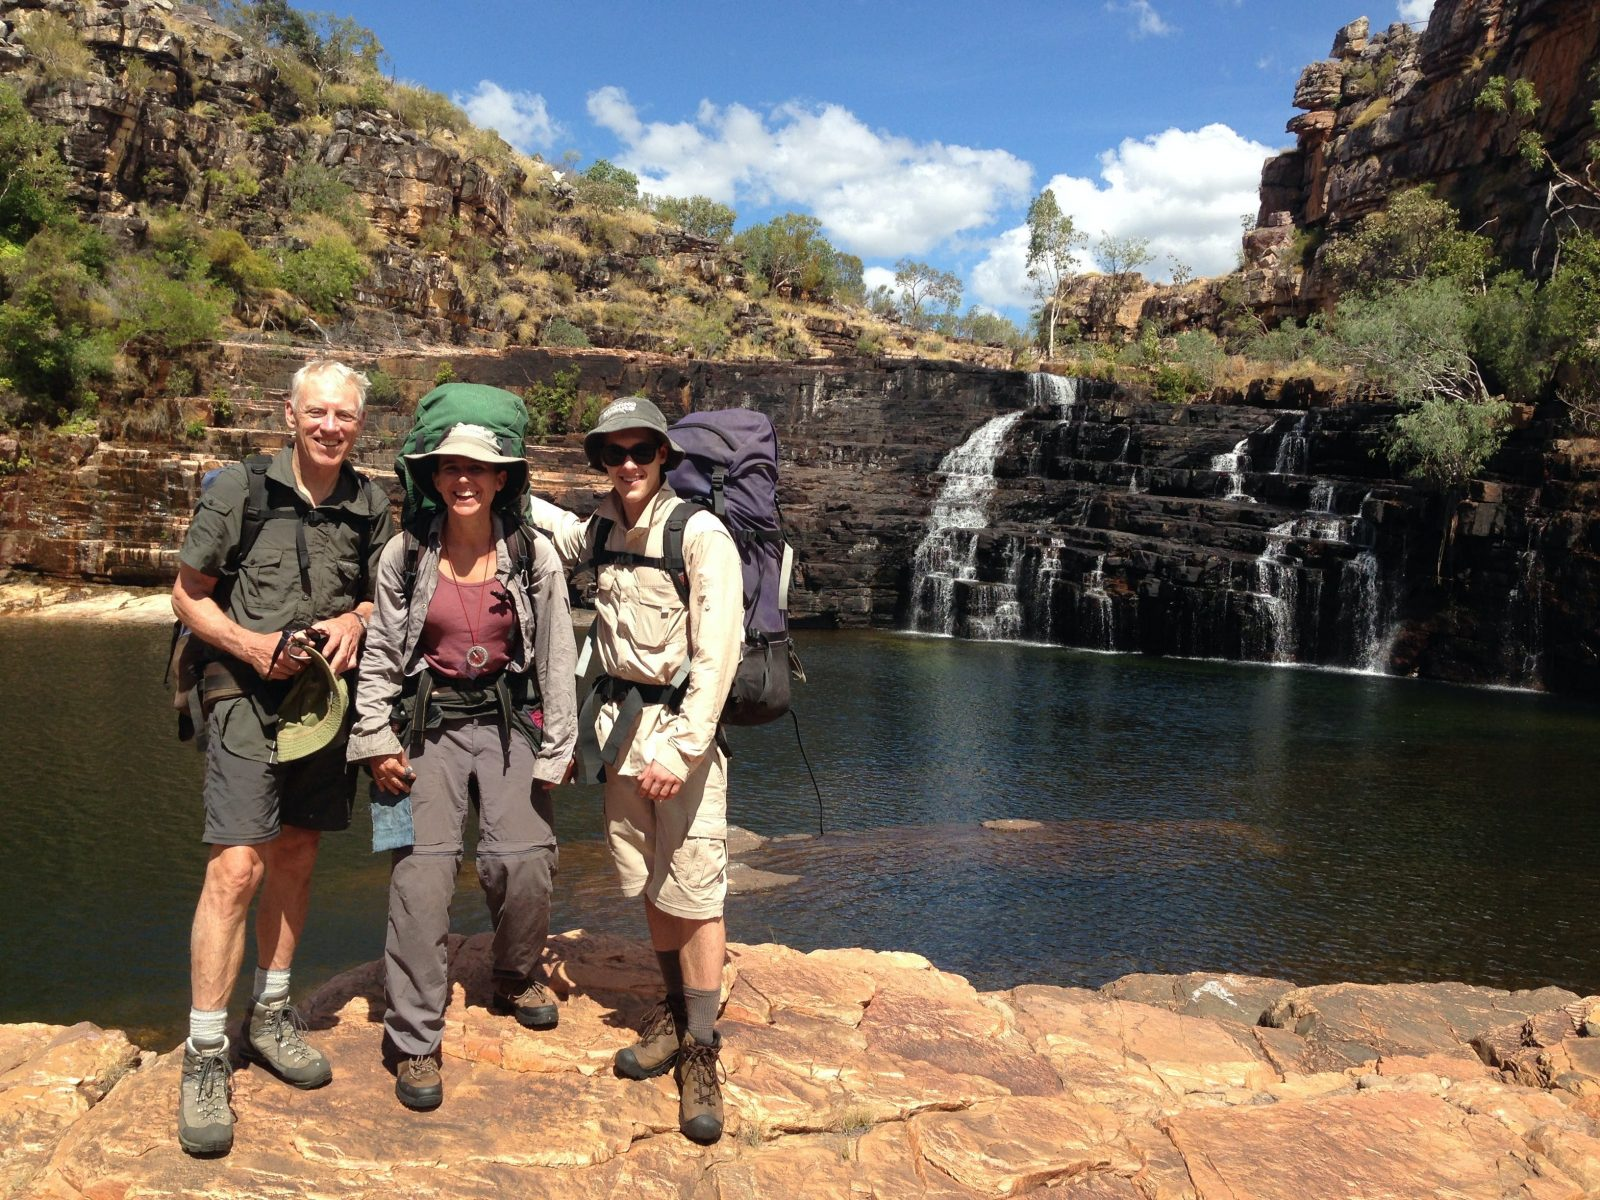 Amphitheatre Falls, Kakadu. Mid-Dry season. The only way to get here is on an overnight hike.